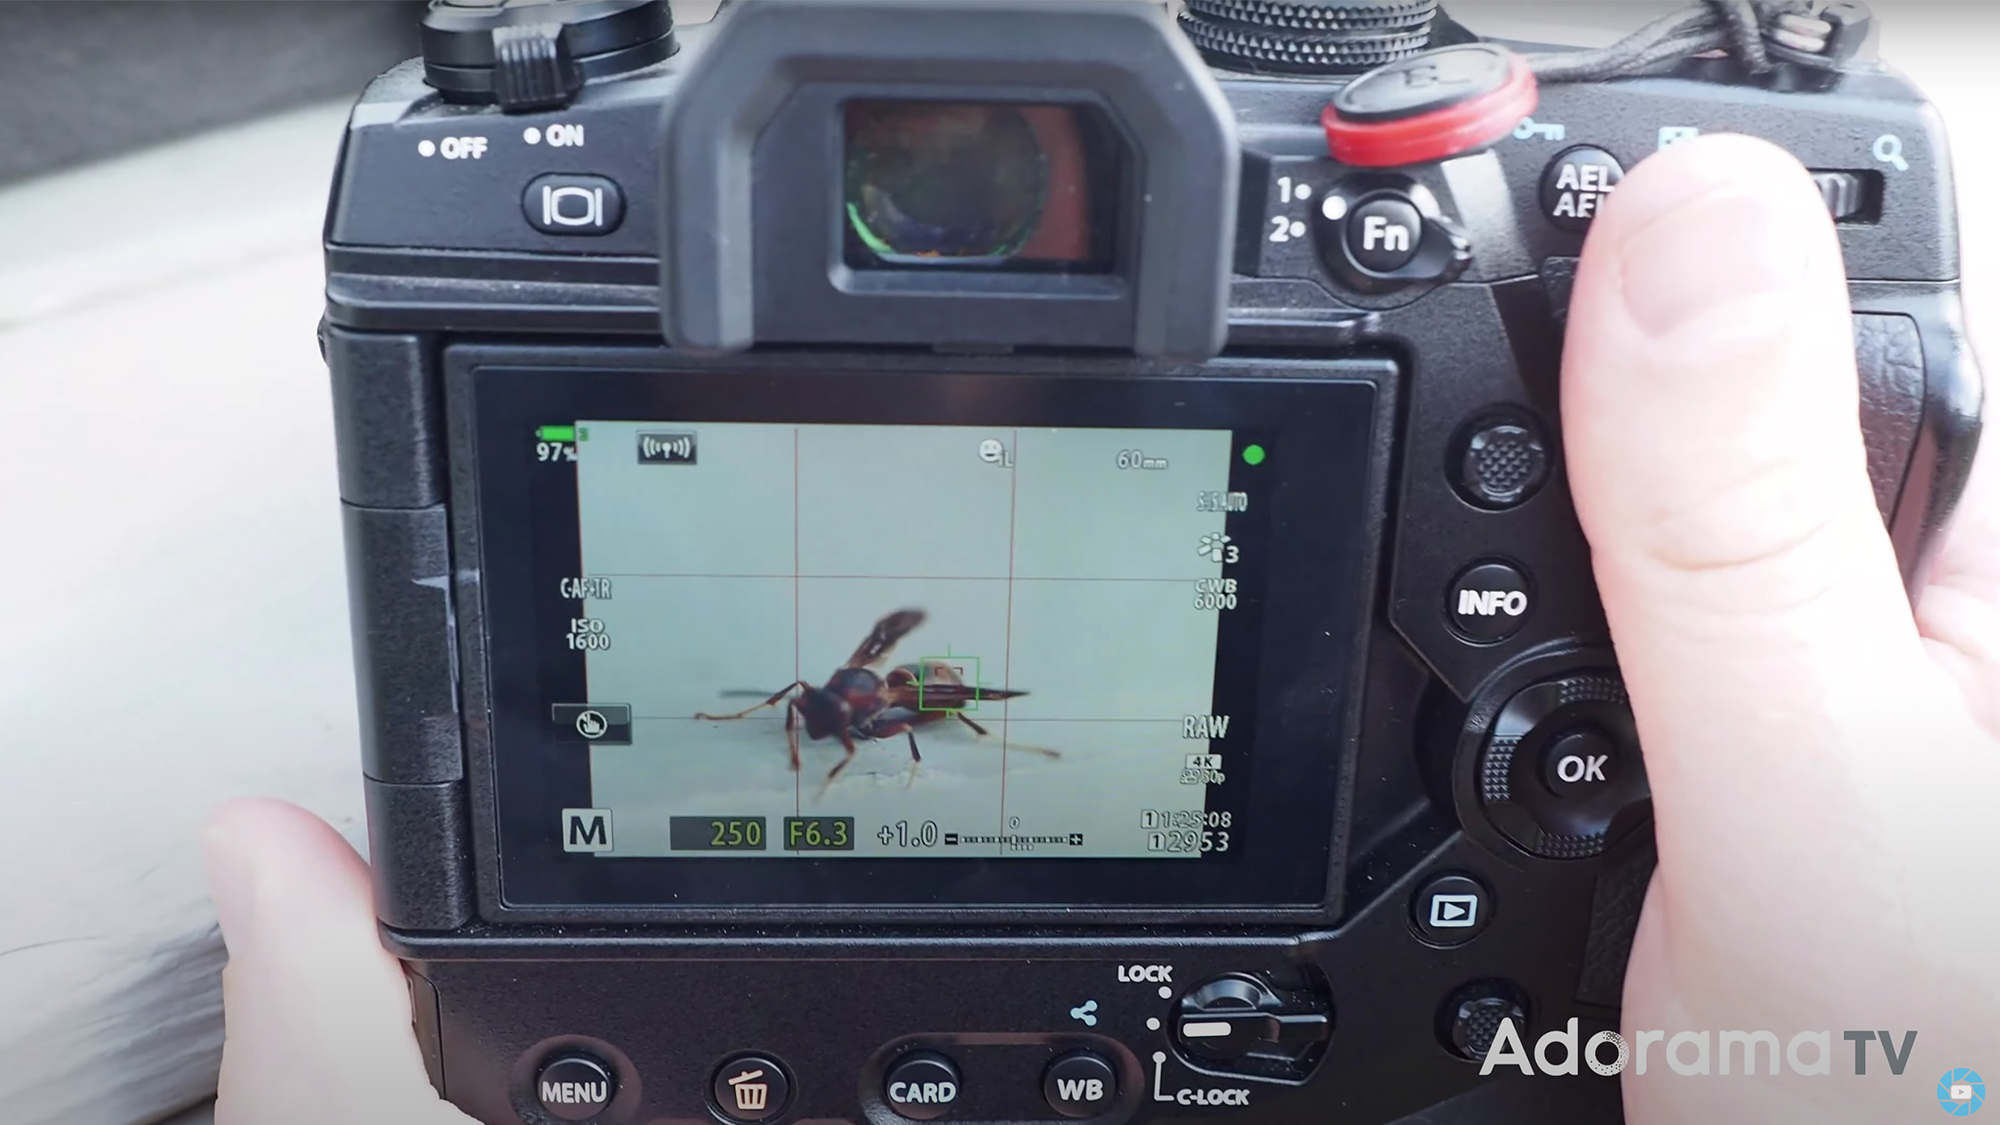 Adorama Announces Macro Photography Challenge with Olympus Prize Package